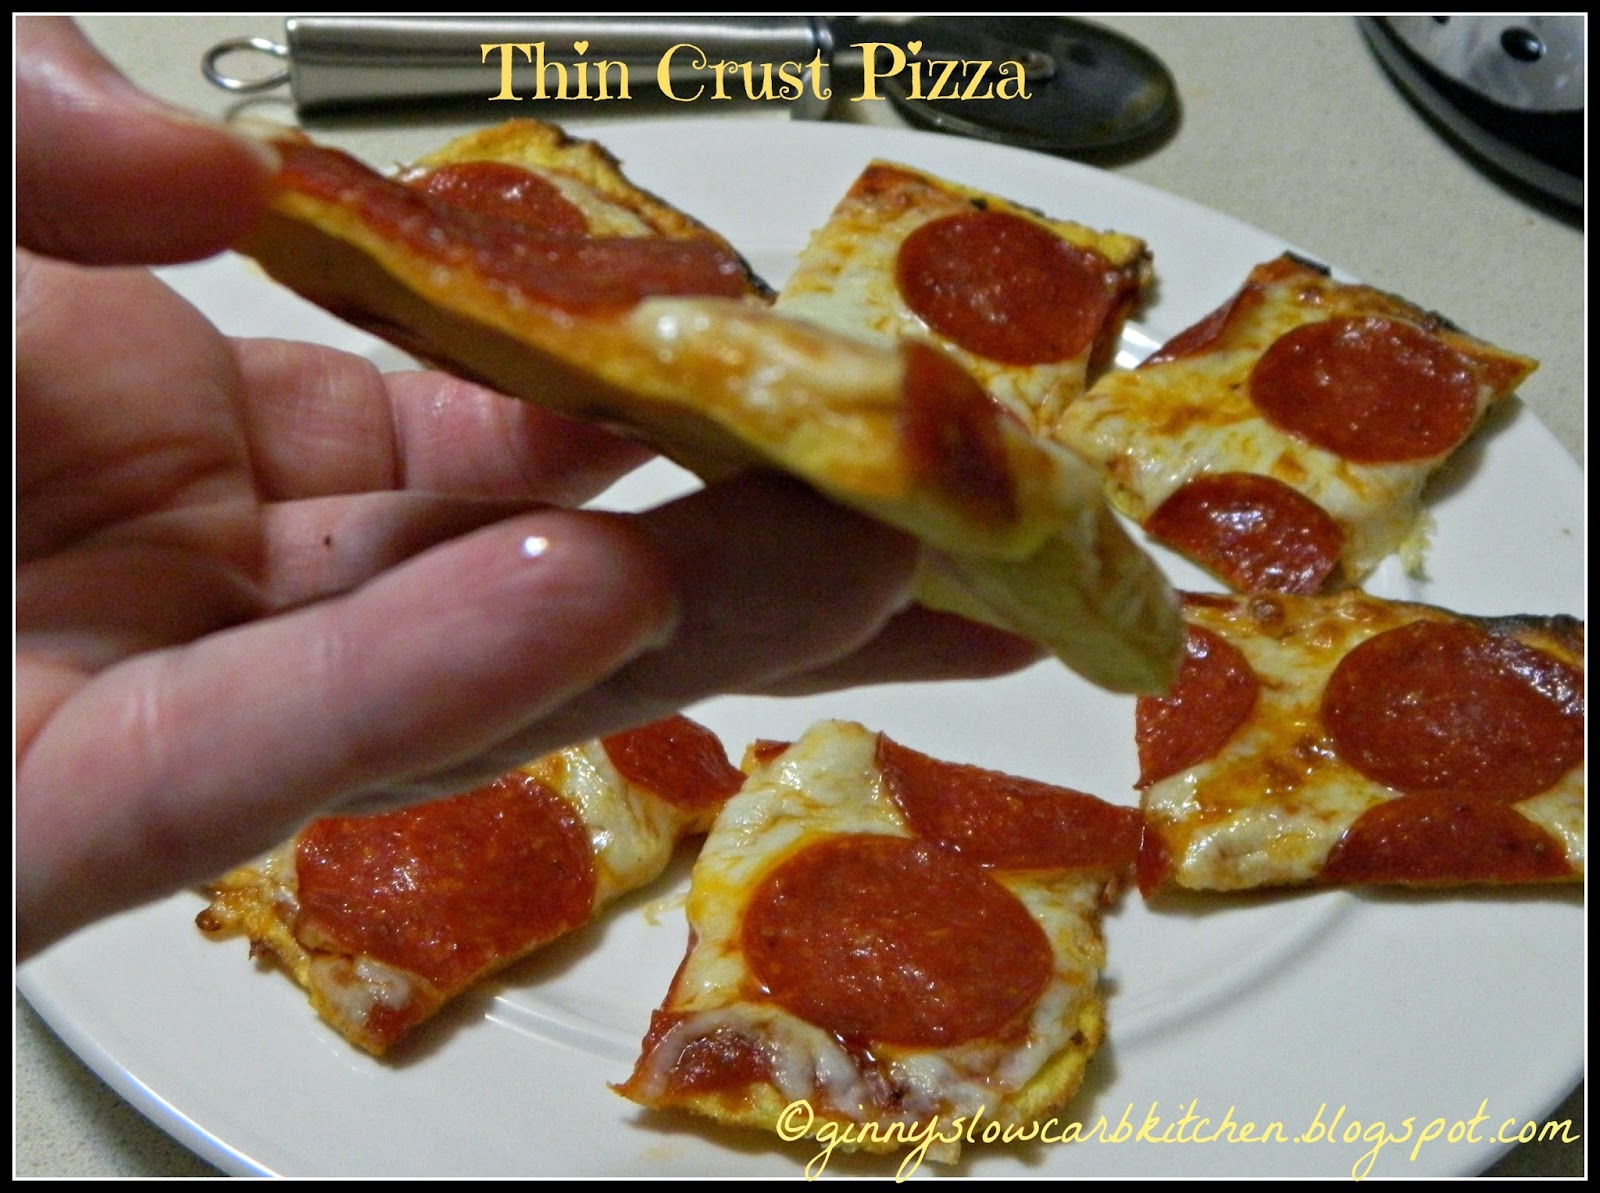 Ginny's Low Carb Kitchen: THIN CRUST PIZZA CRUST